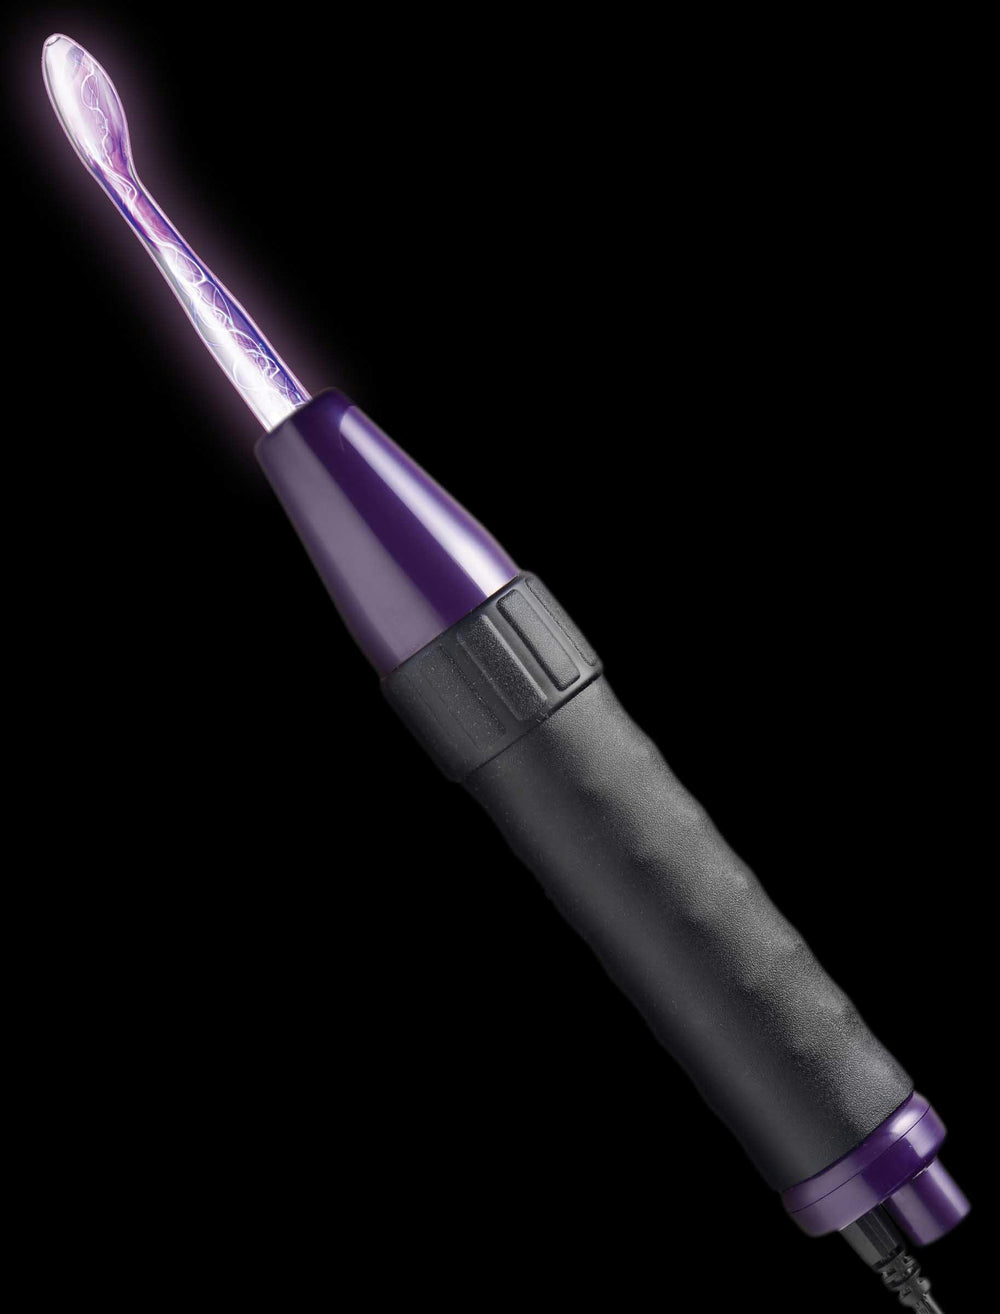 Zeus Deluxe Edition Twilight Violet Wand Kit - Fun and Kinky Sex Toys